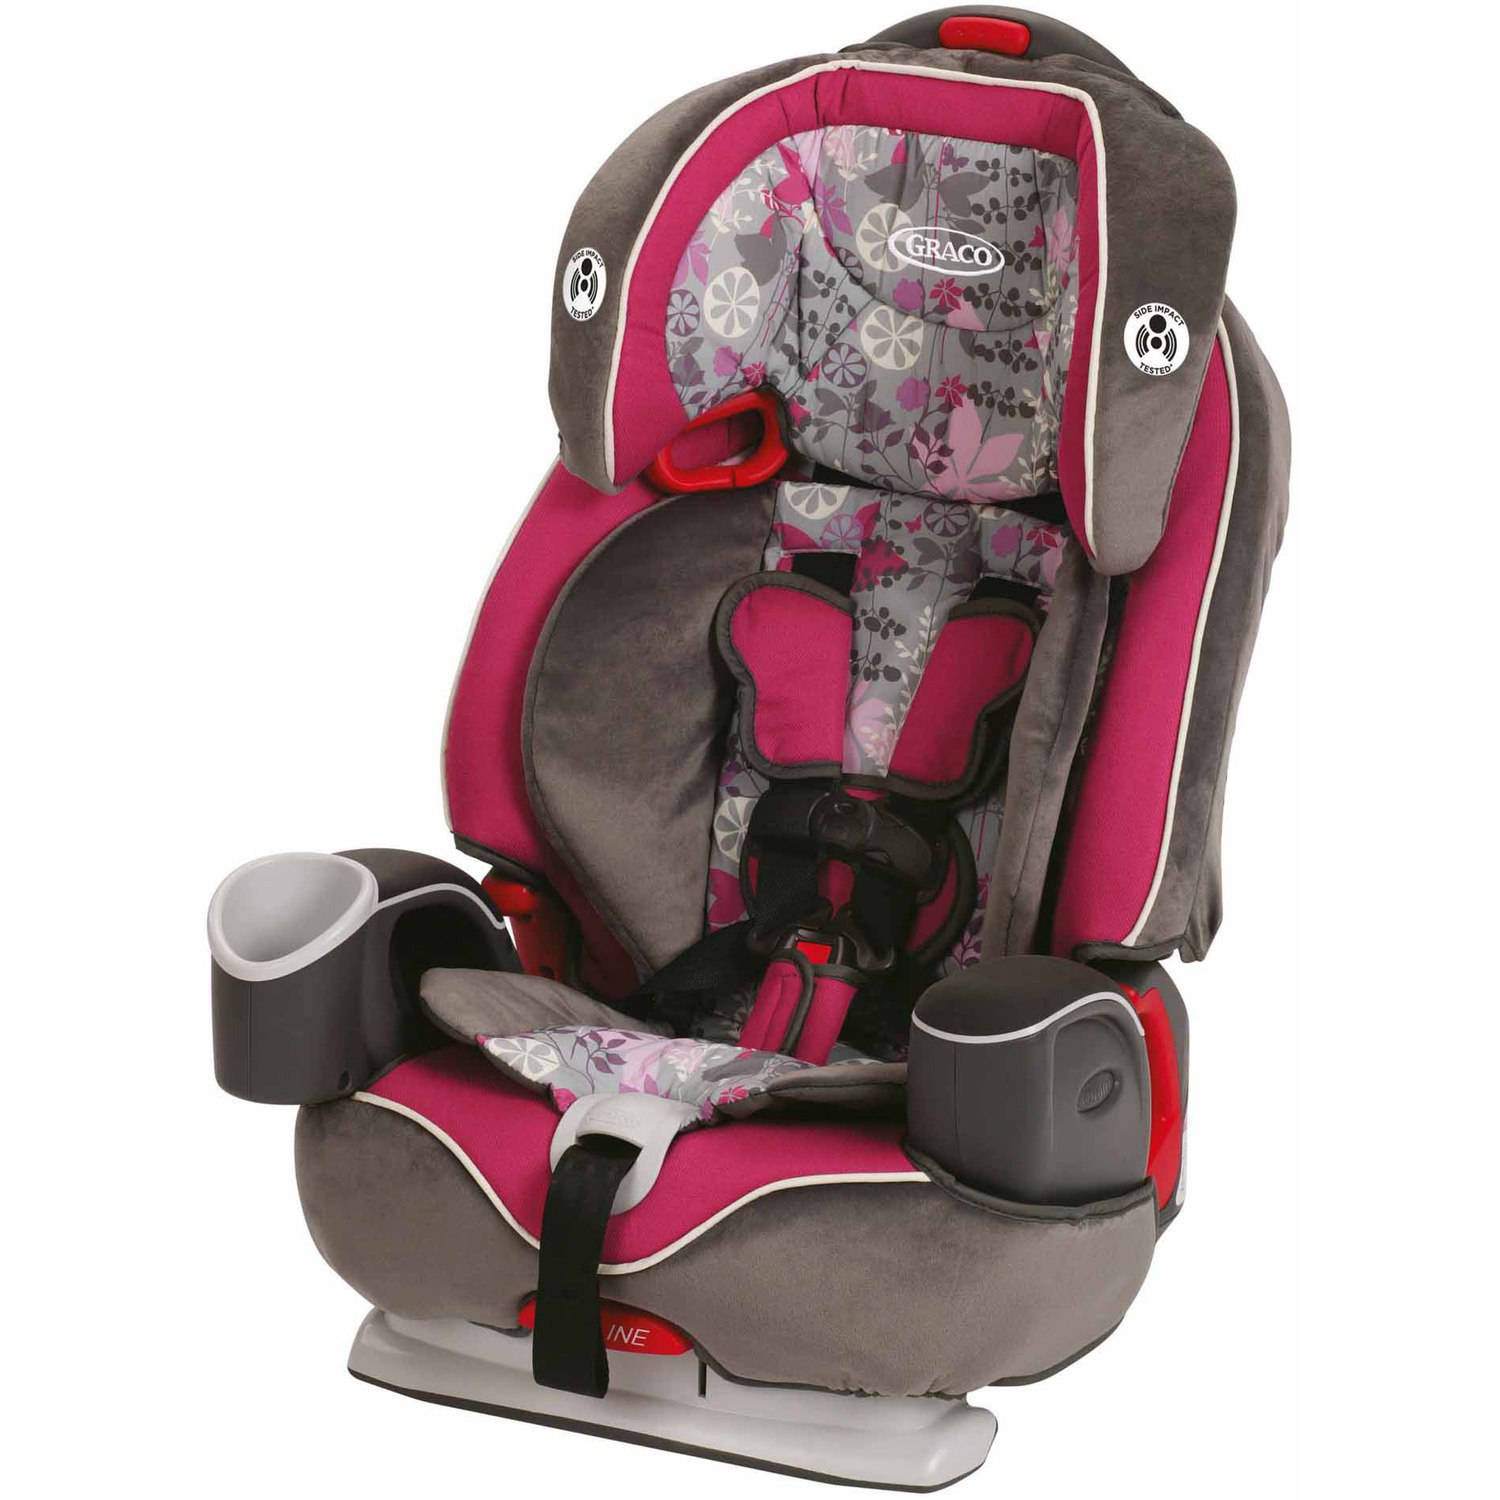 Graco Nautilus 3-in-1 Booster Seat, Bethany